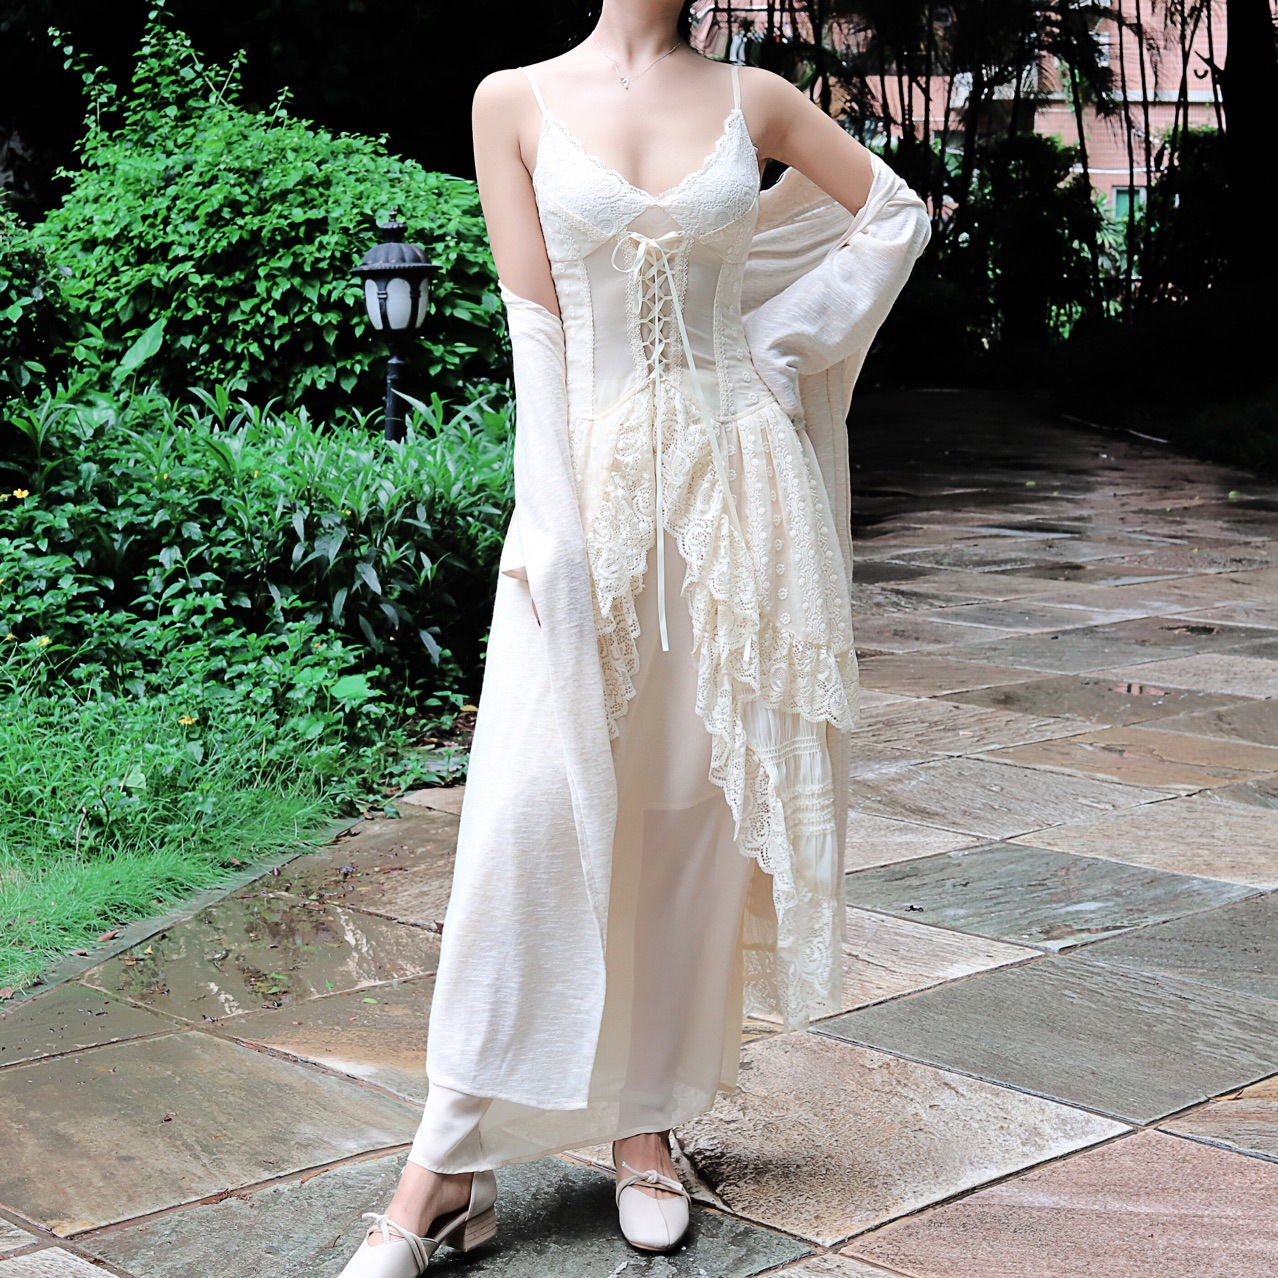 Zhixun same style Pea Princess retro auricular sling long dress court style show thin cover meat two piece set